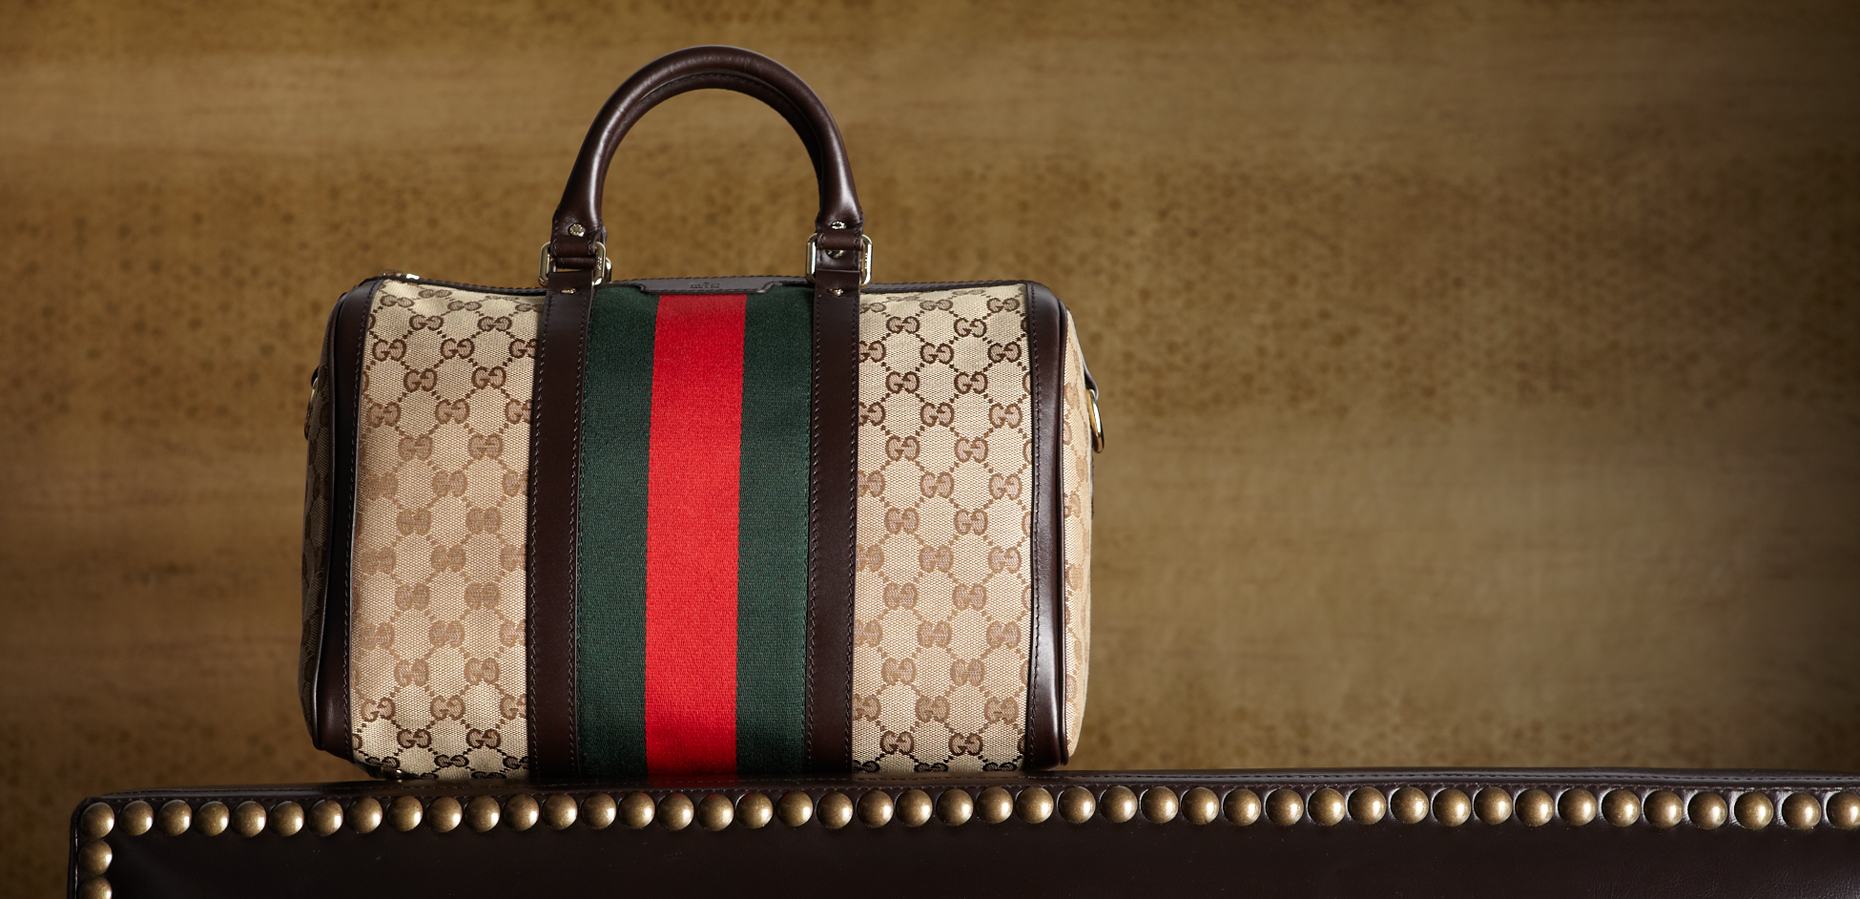 121001_Gucci-Handbags_10122073_A1